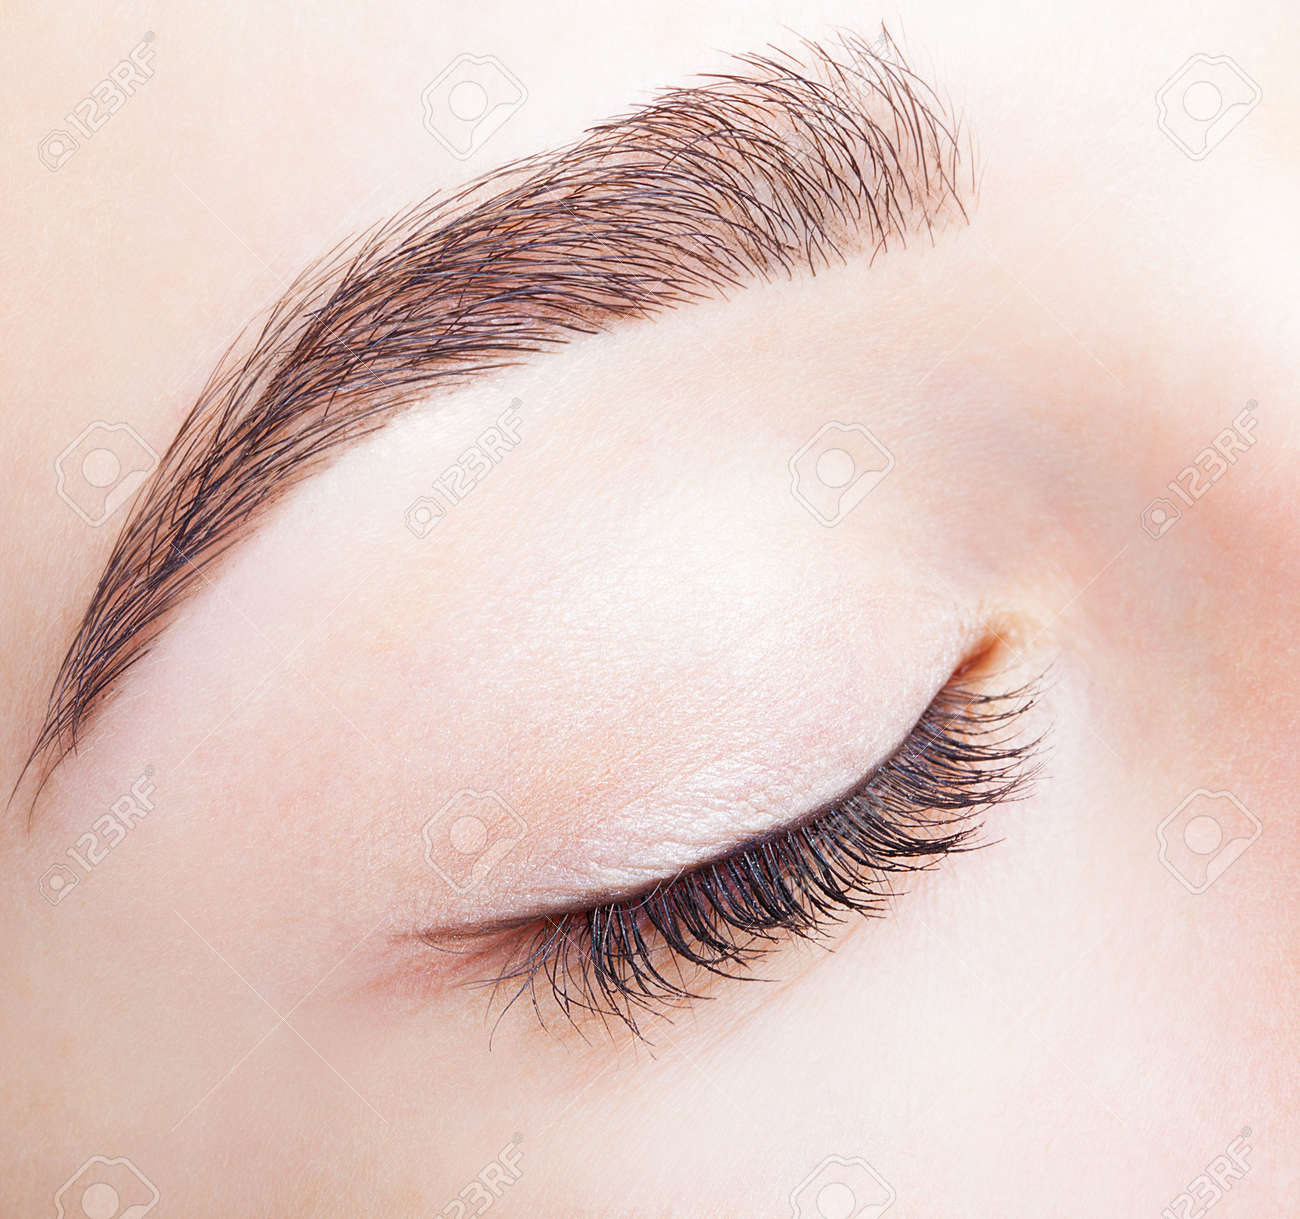 Closeup shot of female closed eye and brows with day makeup - 37028657